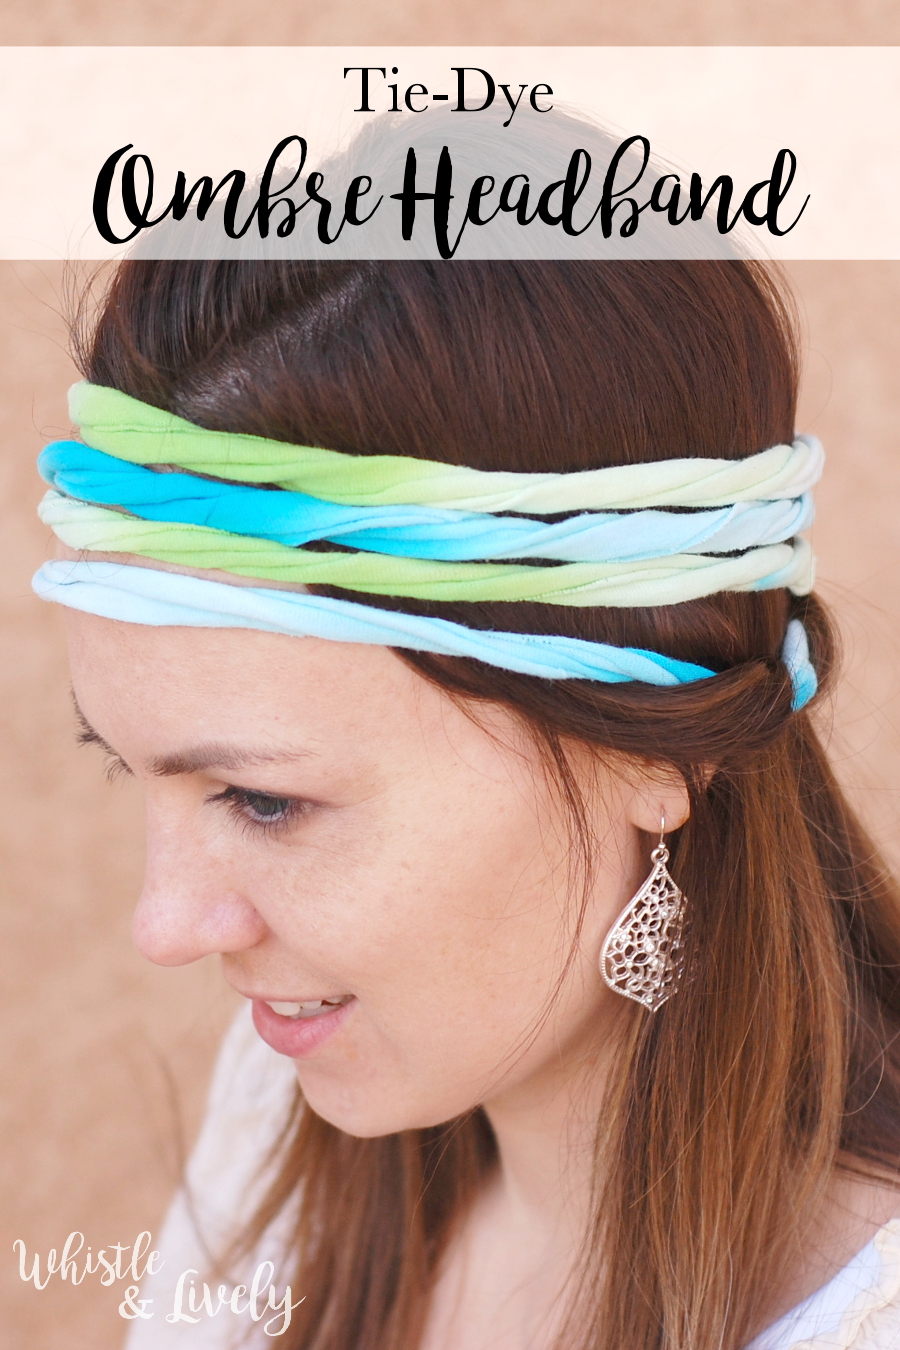 Ombre Tie Dye Headband - Make this cute, bright headband from a recycled t-shirt, a fun summertime pojrect. Perfect project for older kids!